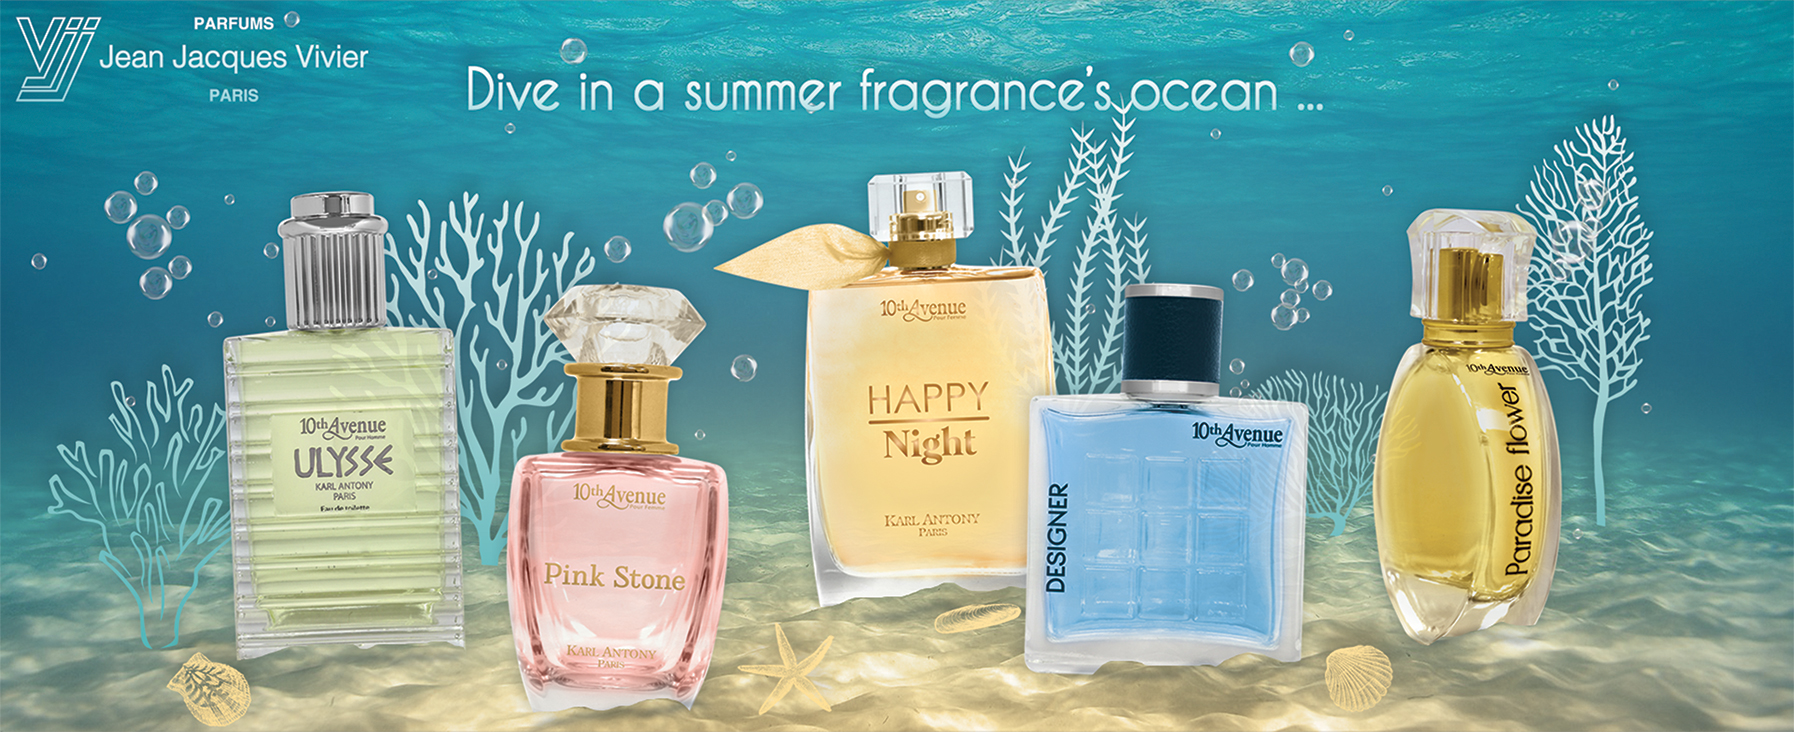 Parfums-JJV-Jean-Jacques-Vivier-Summer-Fragrances-perfume-web